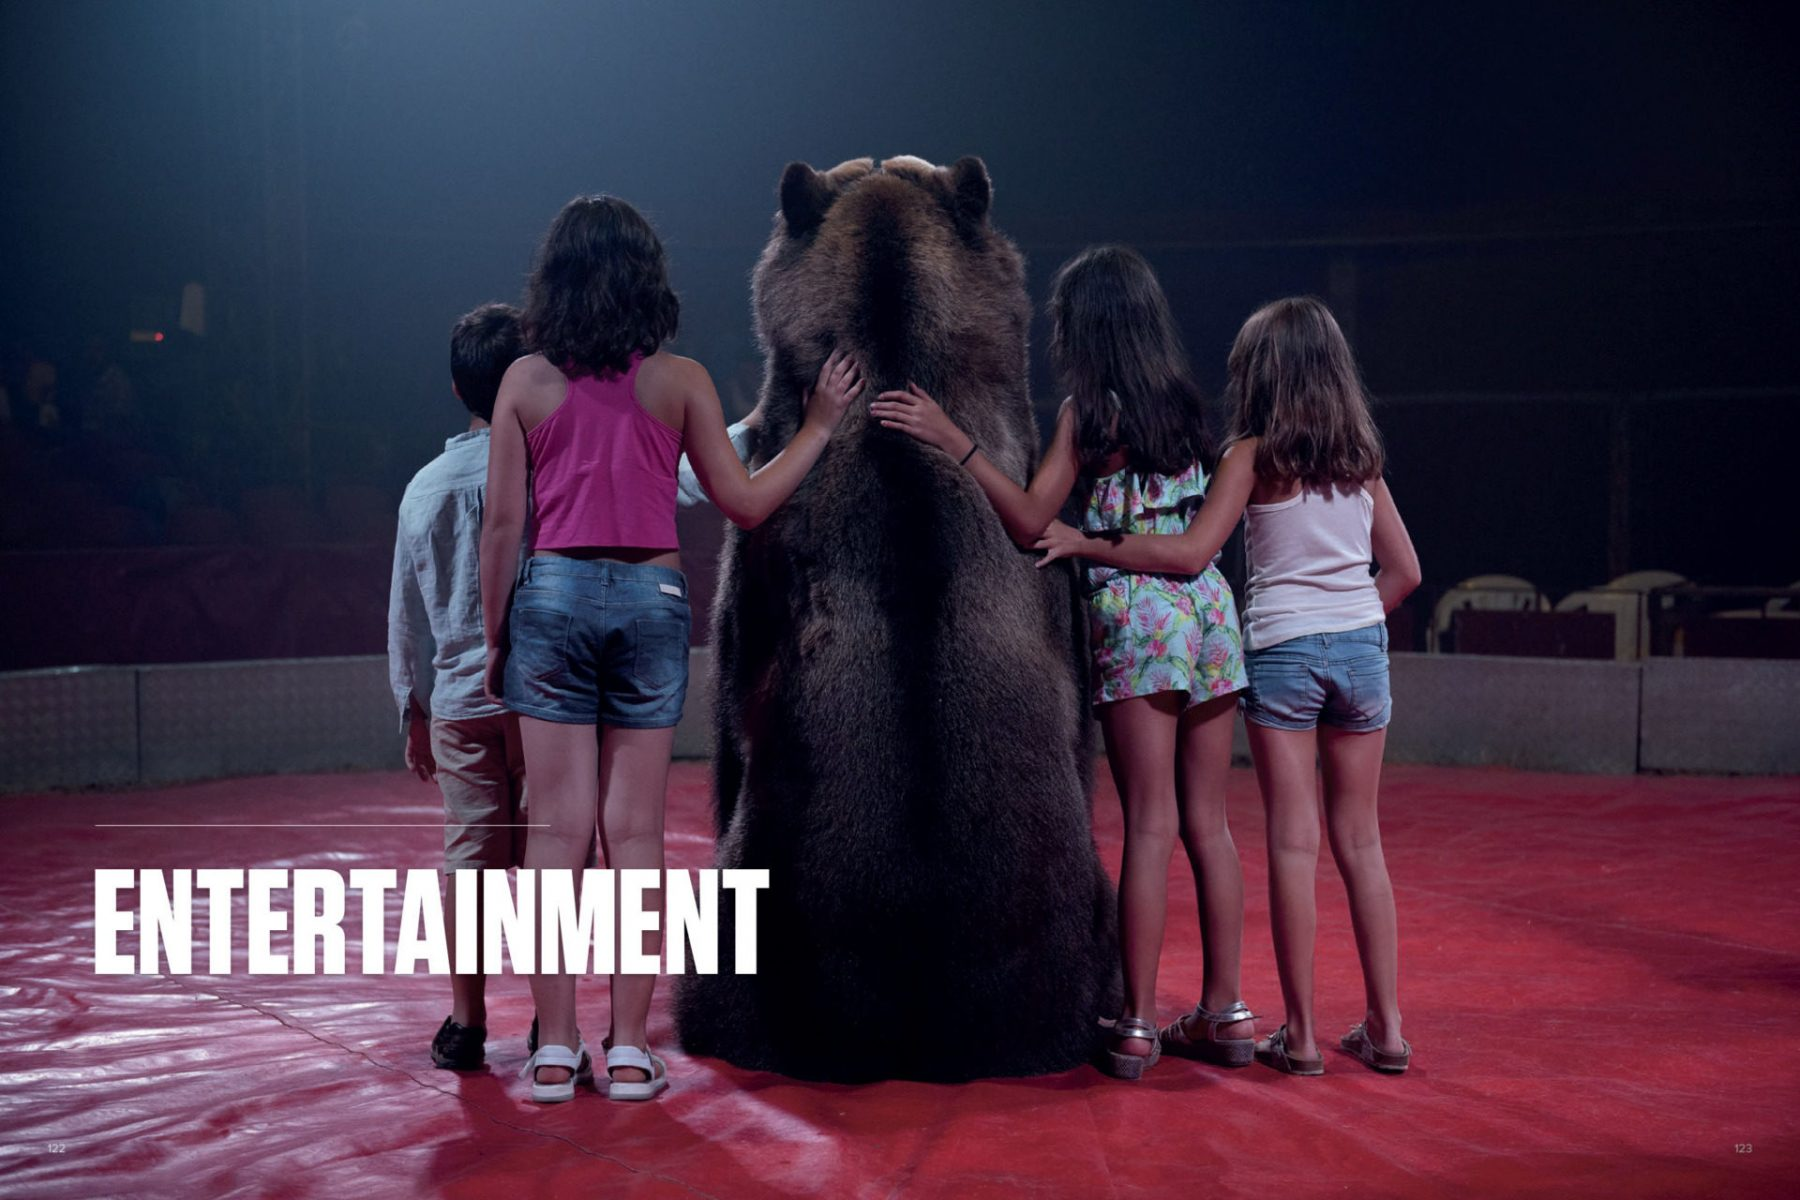 Tima the brown bear of the Gran Circo Holiday circus poses for a photo with children. Spain. Aitor Garmendia